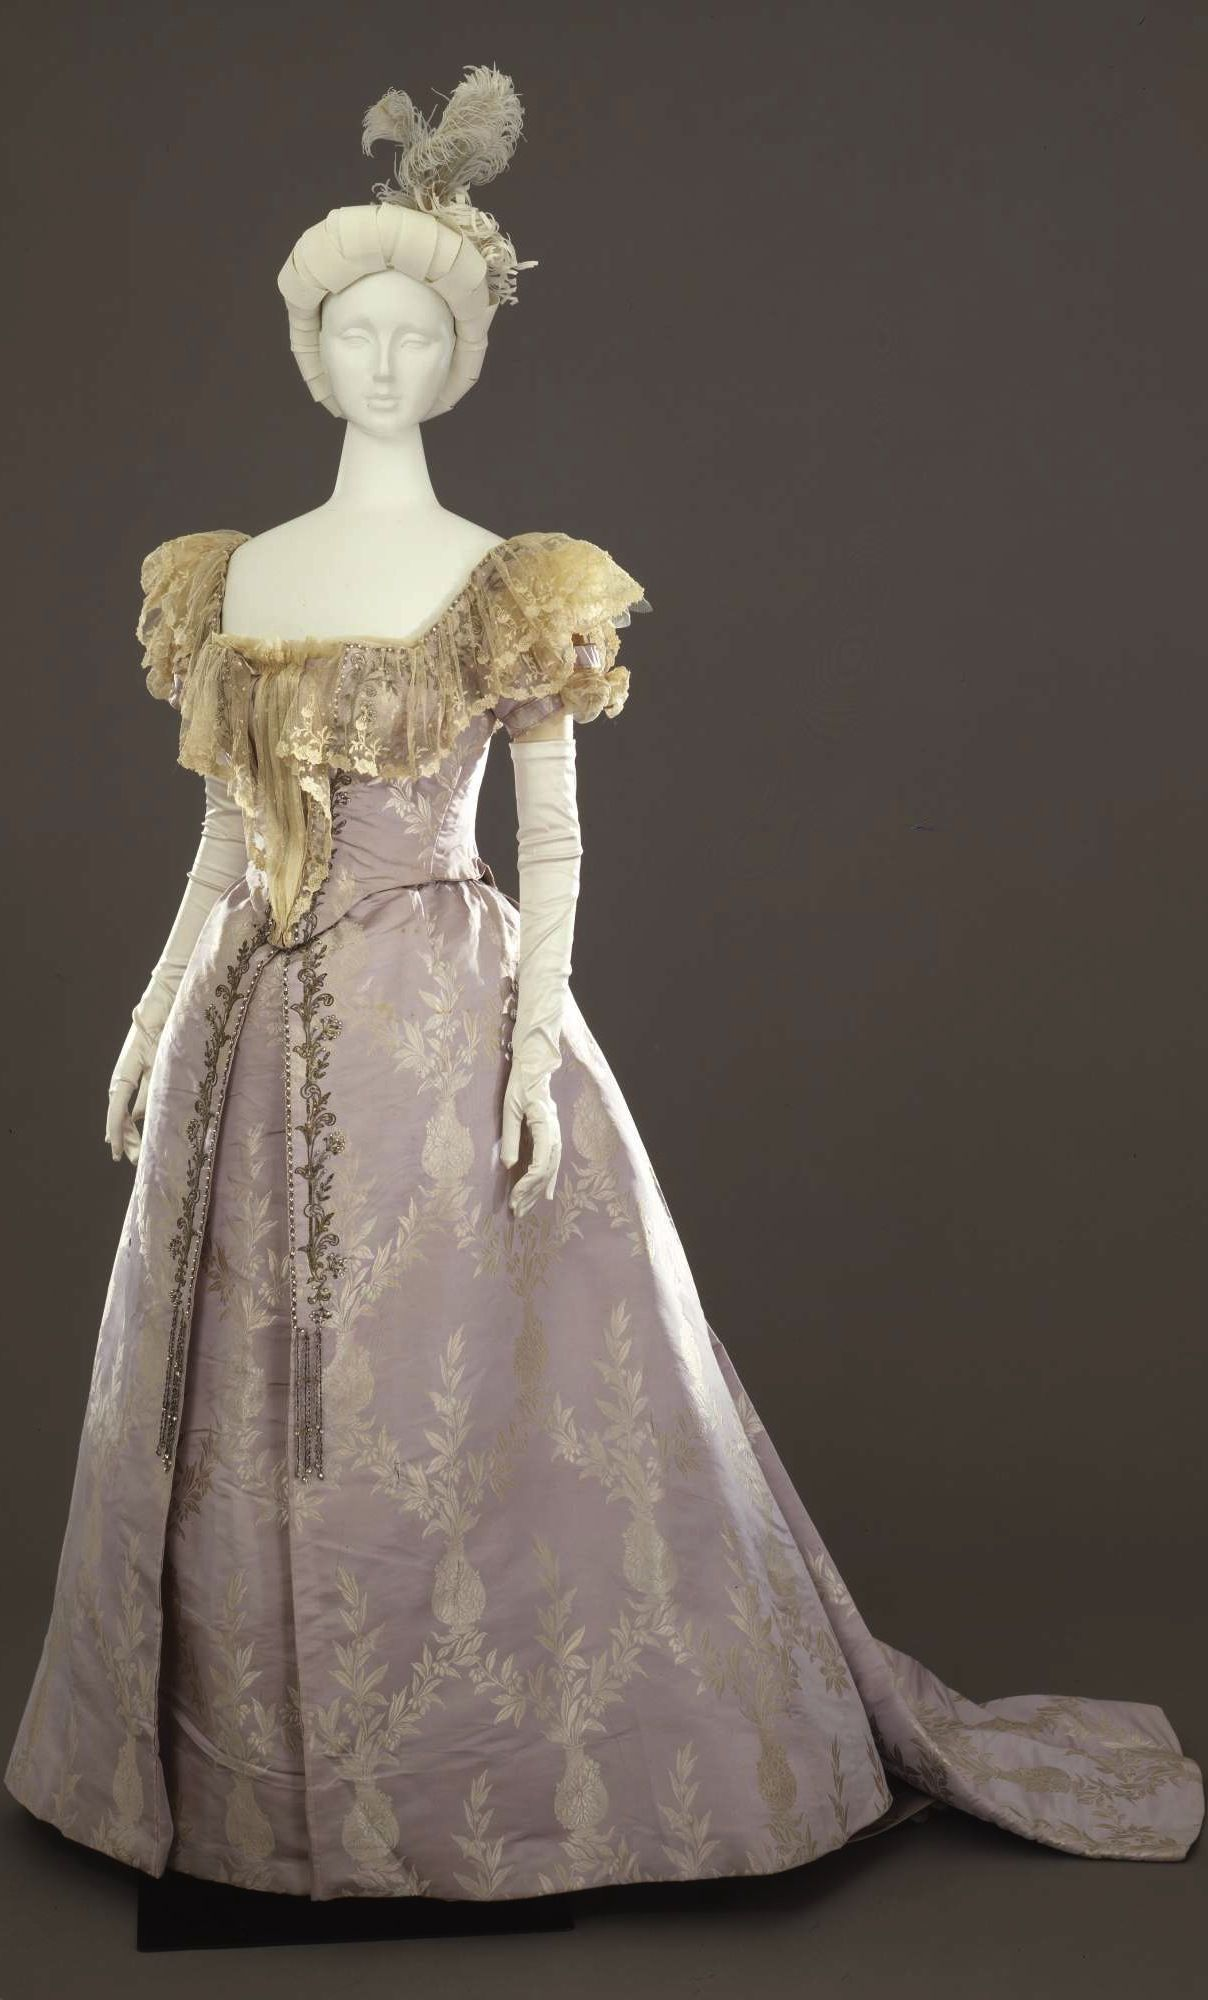 Ball Gown In Two Parts Bodice And Skirt By Atelier Mrs C Donovan New York C 1894 95 At The Womens Vintage Dresses Historical Dresses Victorian Fashion